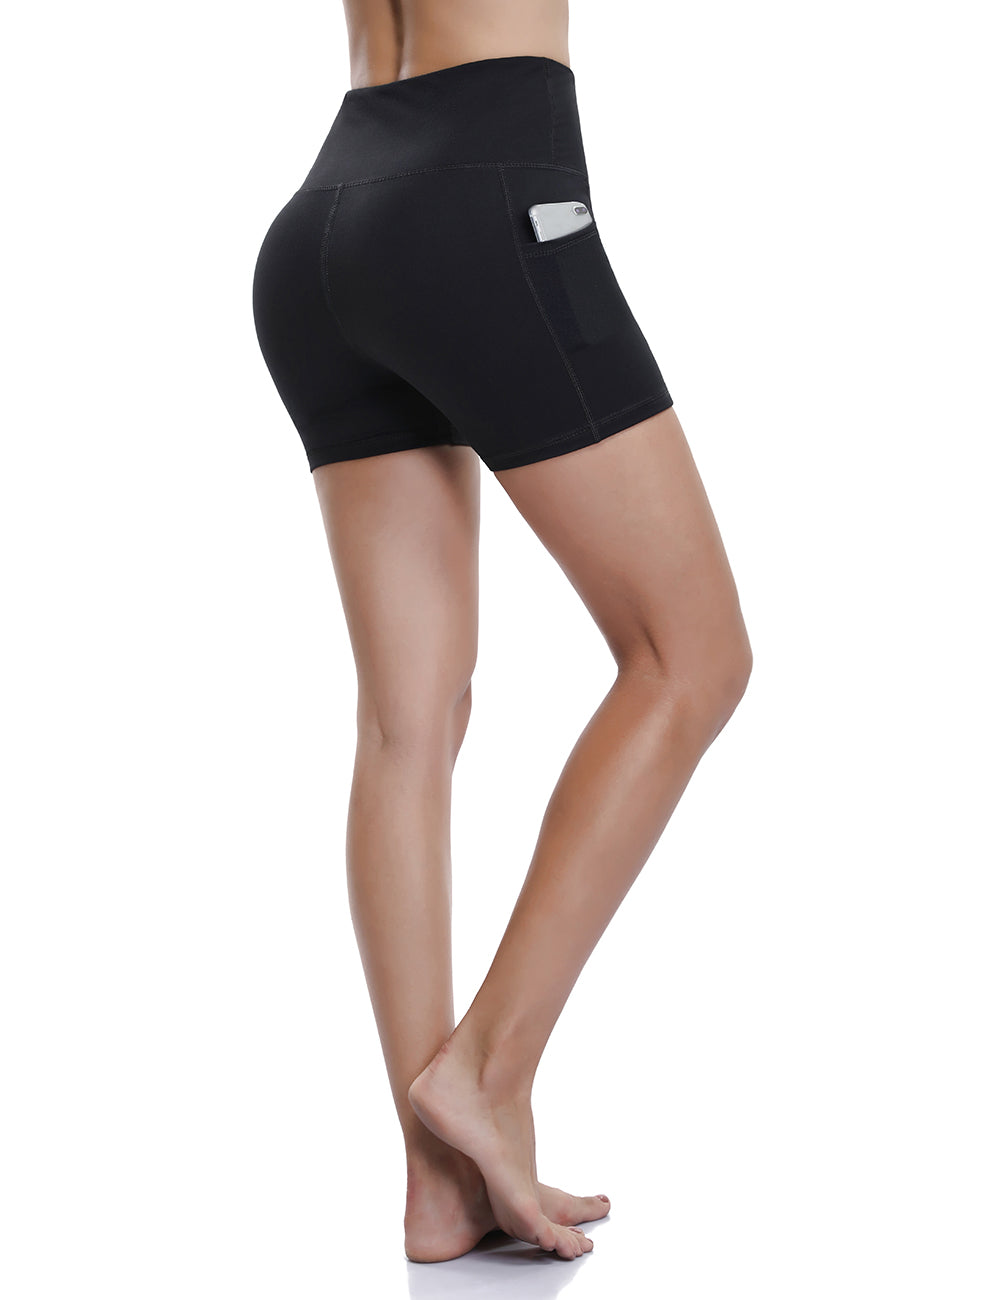 Black Sport Yoga Pants - ALONGFIT